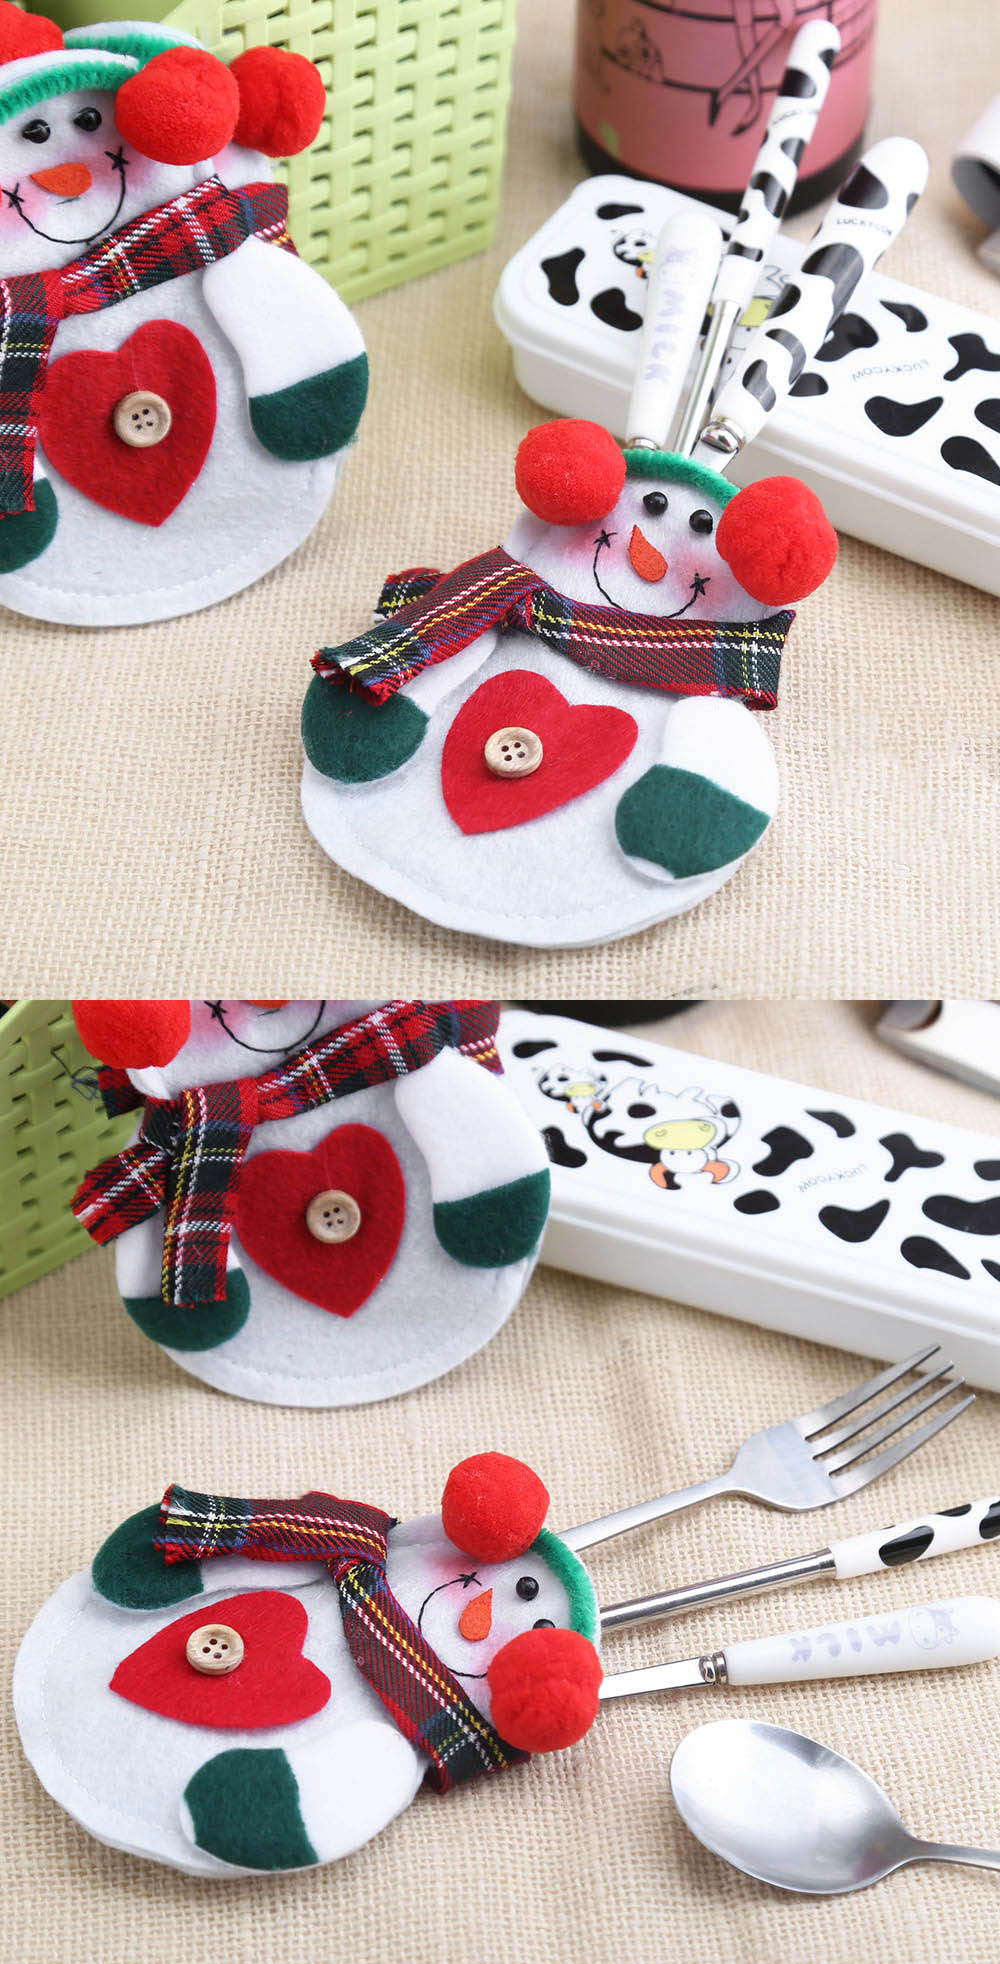 12pcs Snowman Silverware Holder Dinner Table Decoration- Colormix TREE